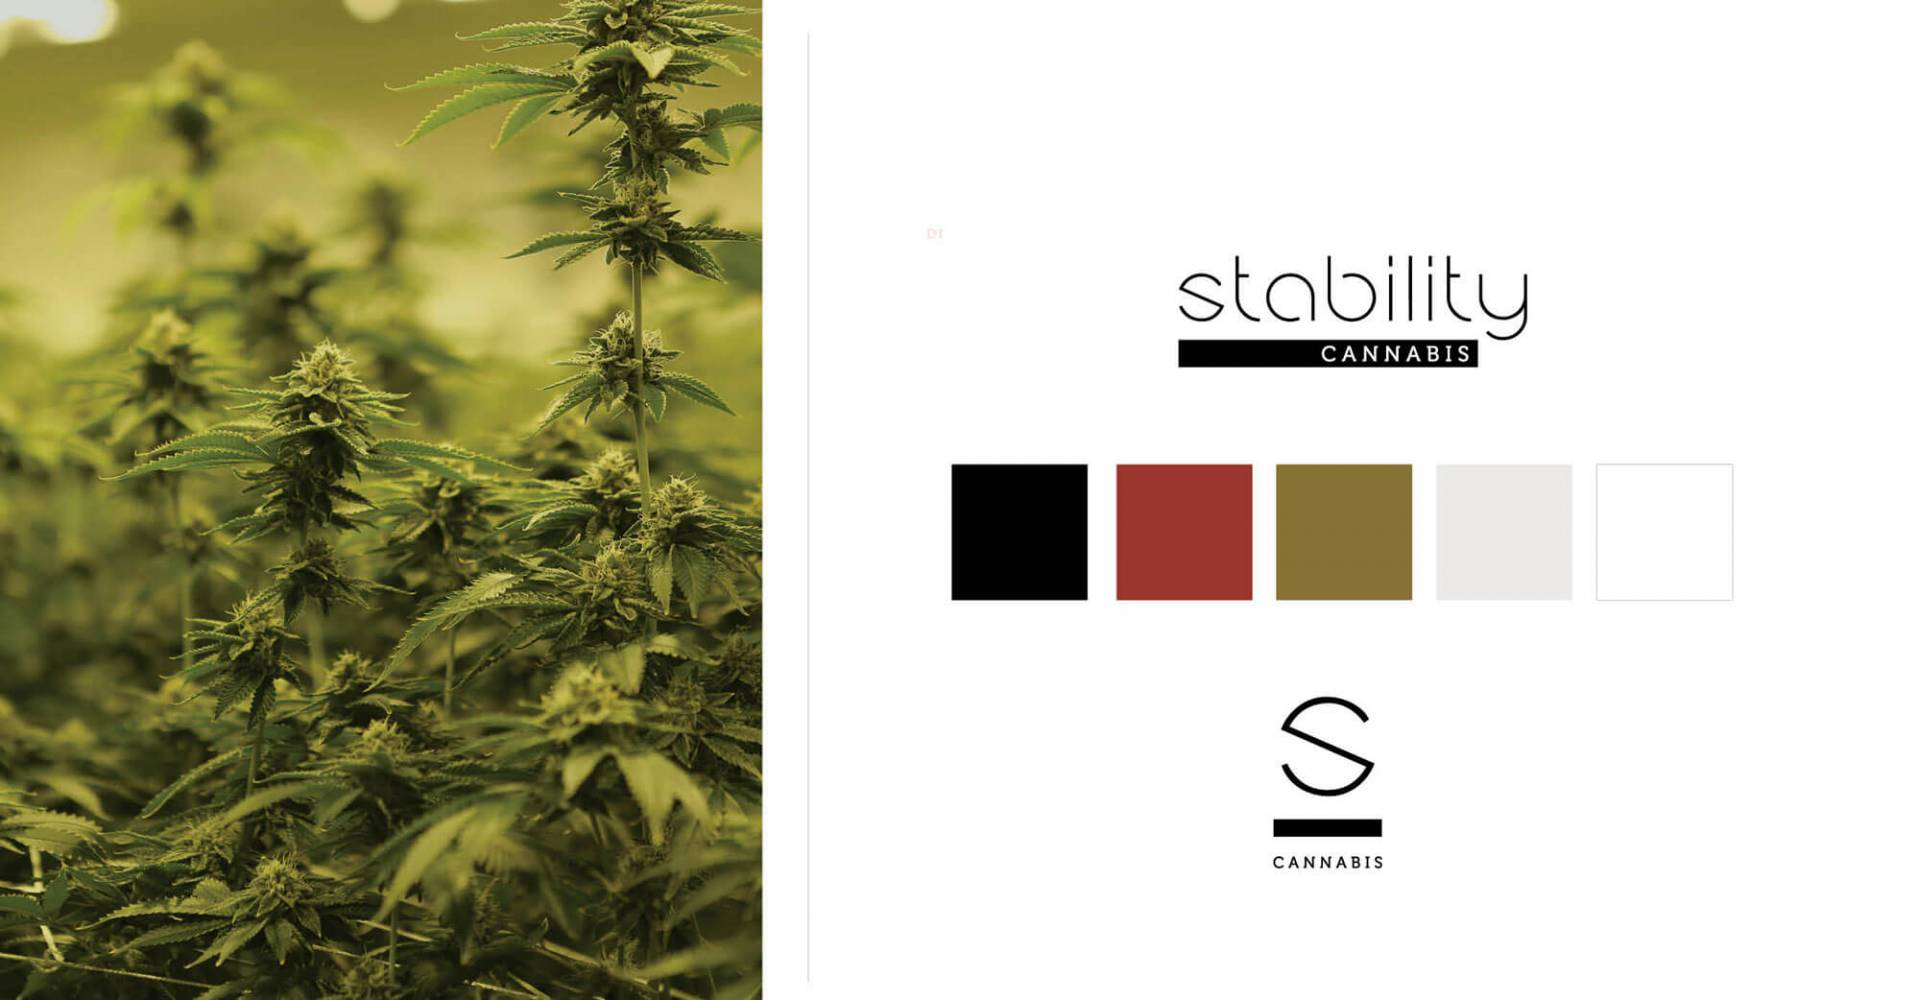 Stability Cannabis - Oklahoma's Cannabis Superstore